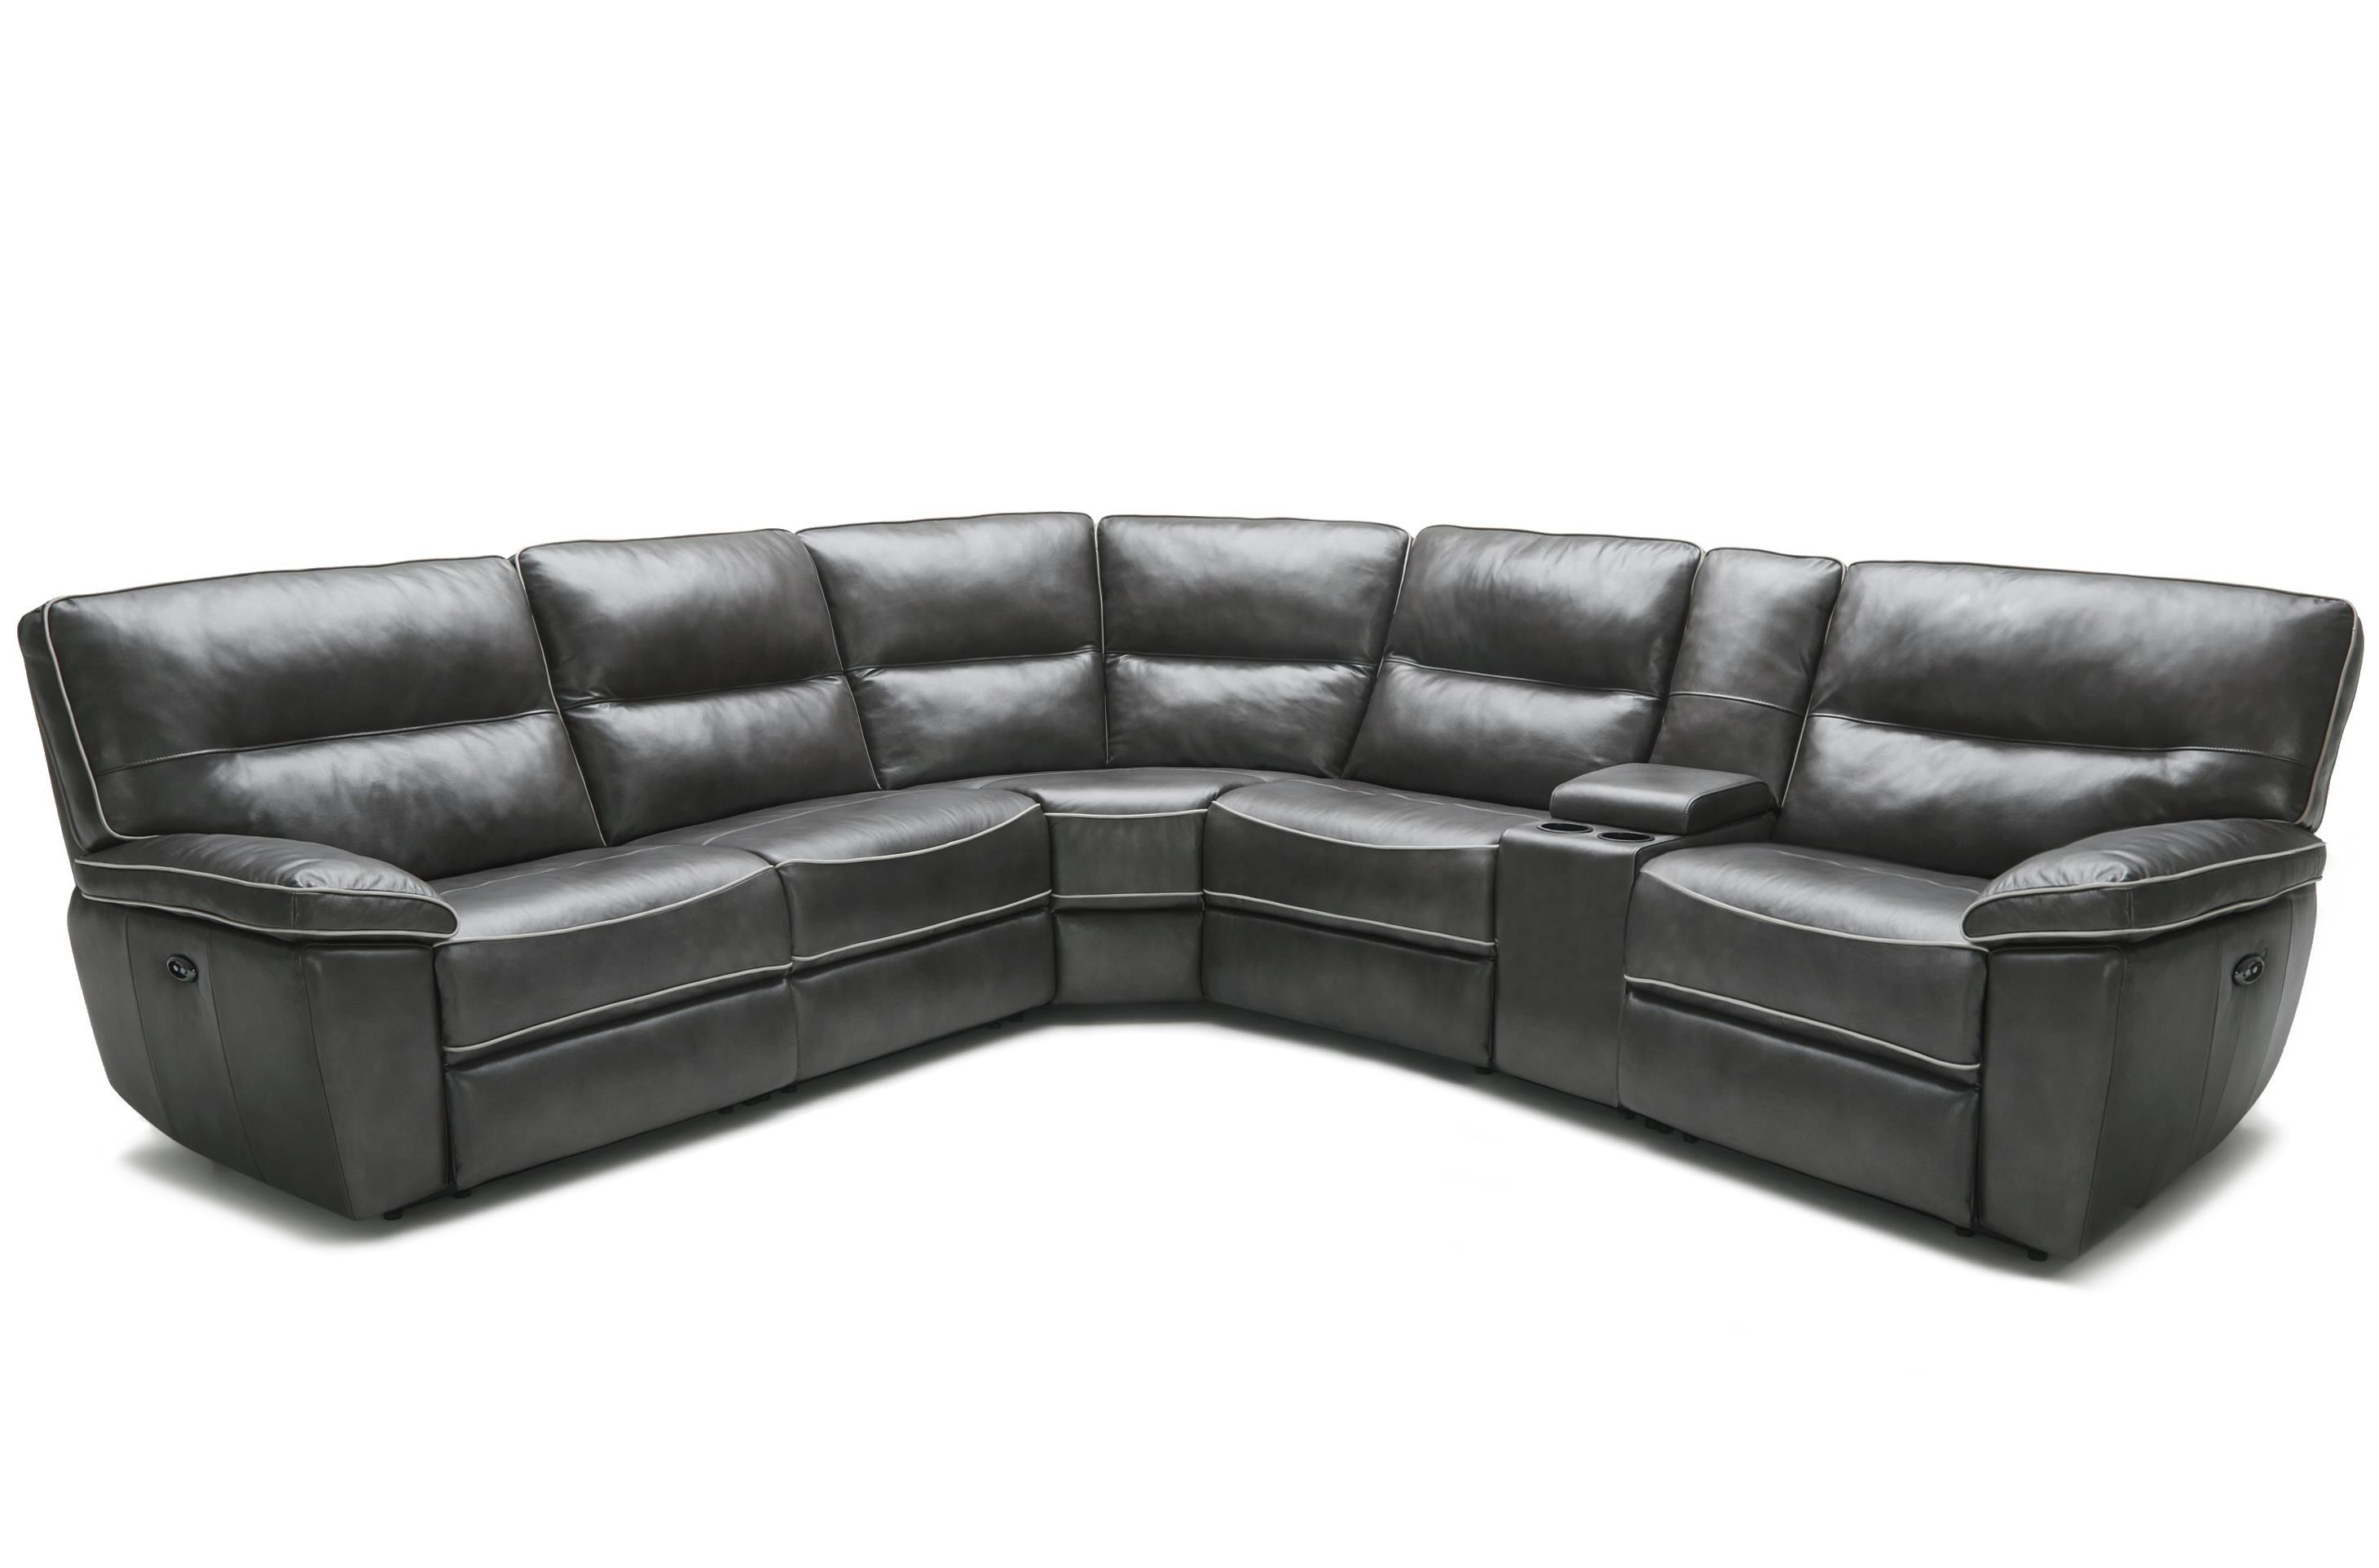 Kuka Home 5067 Transitional 6 Piece Power Reclining  : products2Fkukahome2Fcolor2F506720by20kuka20home5067 sectional m1215 b0jpgscalebothampwidth500ampheight500ampfsharpen25ampdown from www.wilsonhomefurnishings.com size 500 x 500 jpeg 21kB